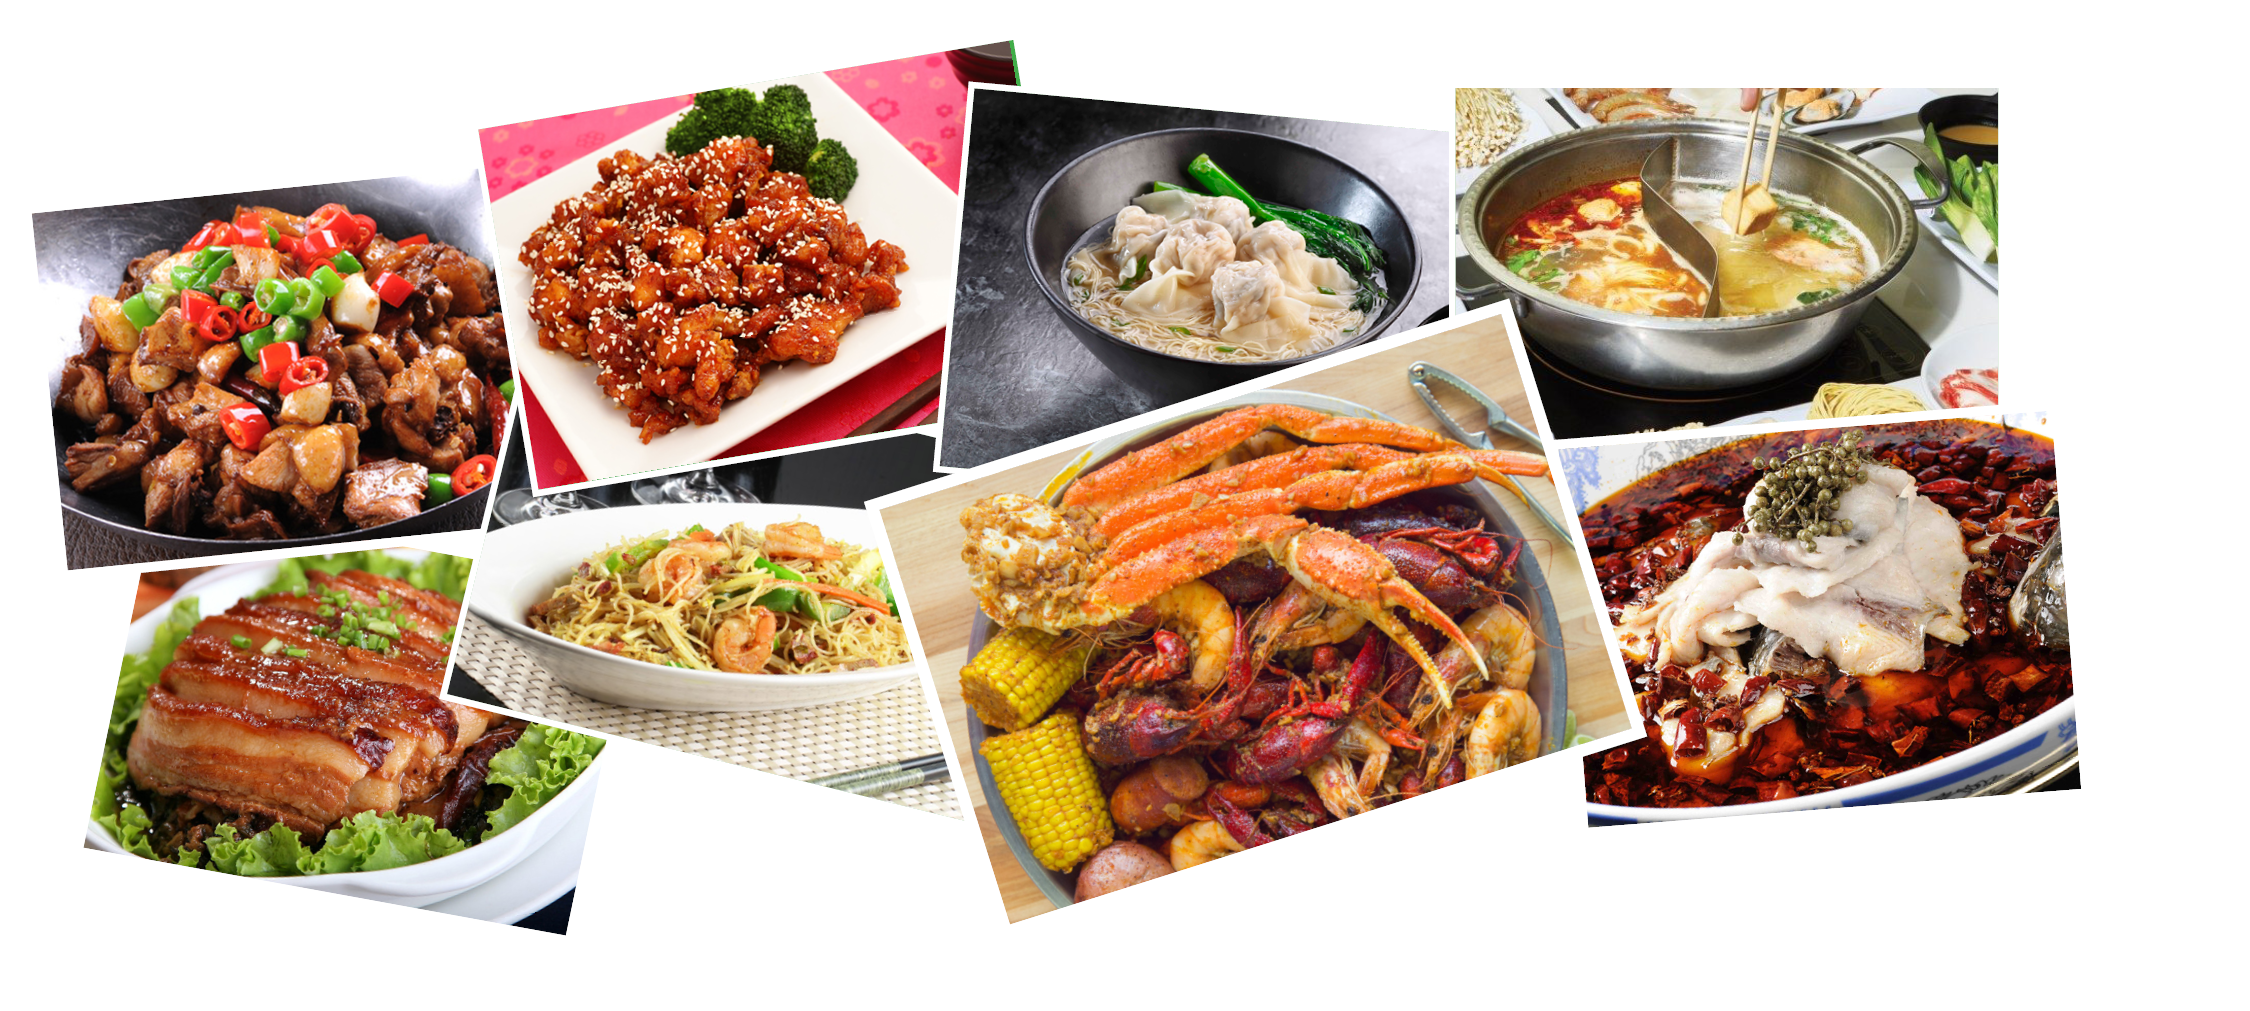 Szechuan Garden Chinese Szechwan Cuisine 6654 Mineral Point Rd Madison Wi 53705 Dine In Carry Out Delivery Catering